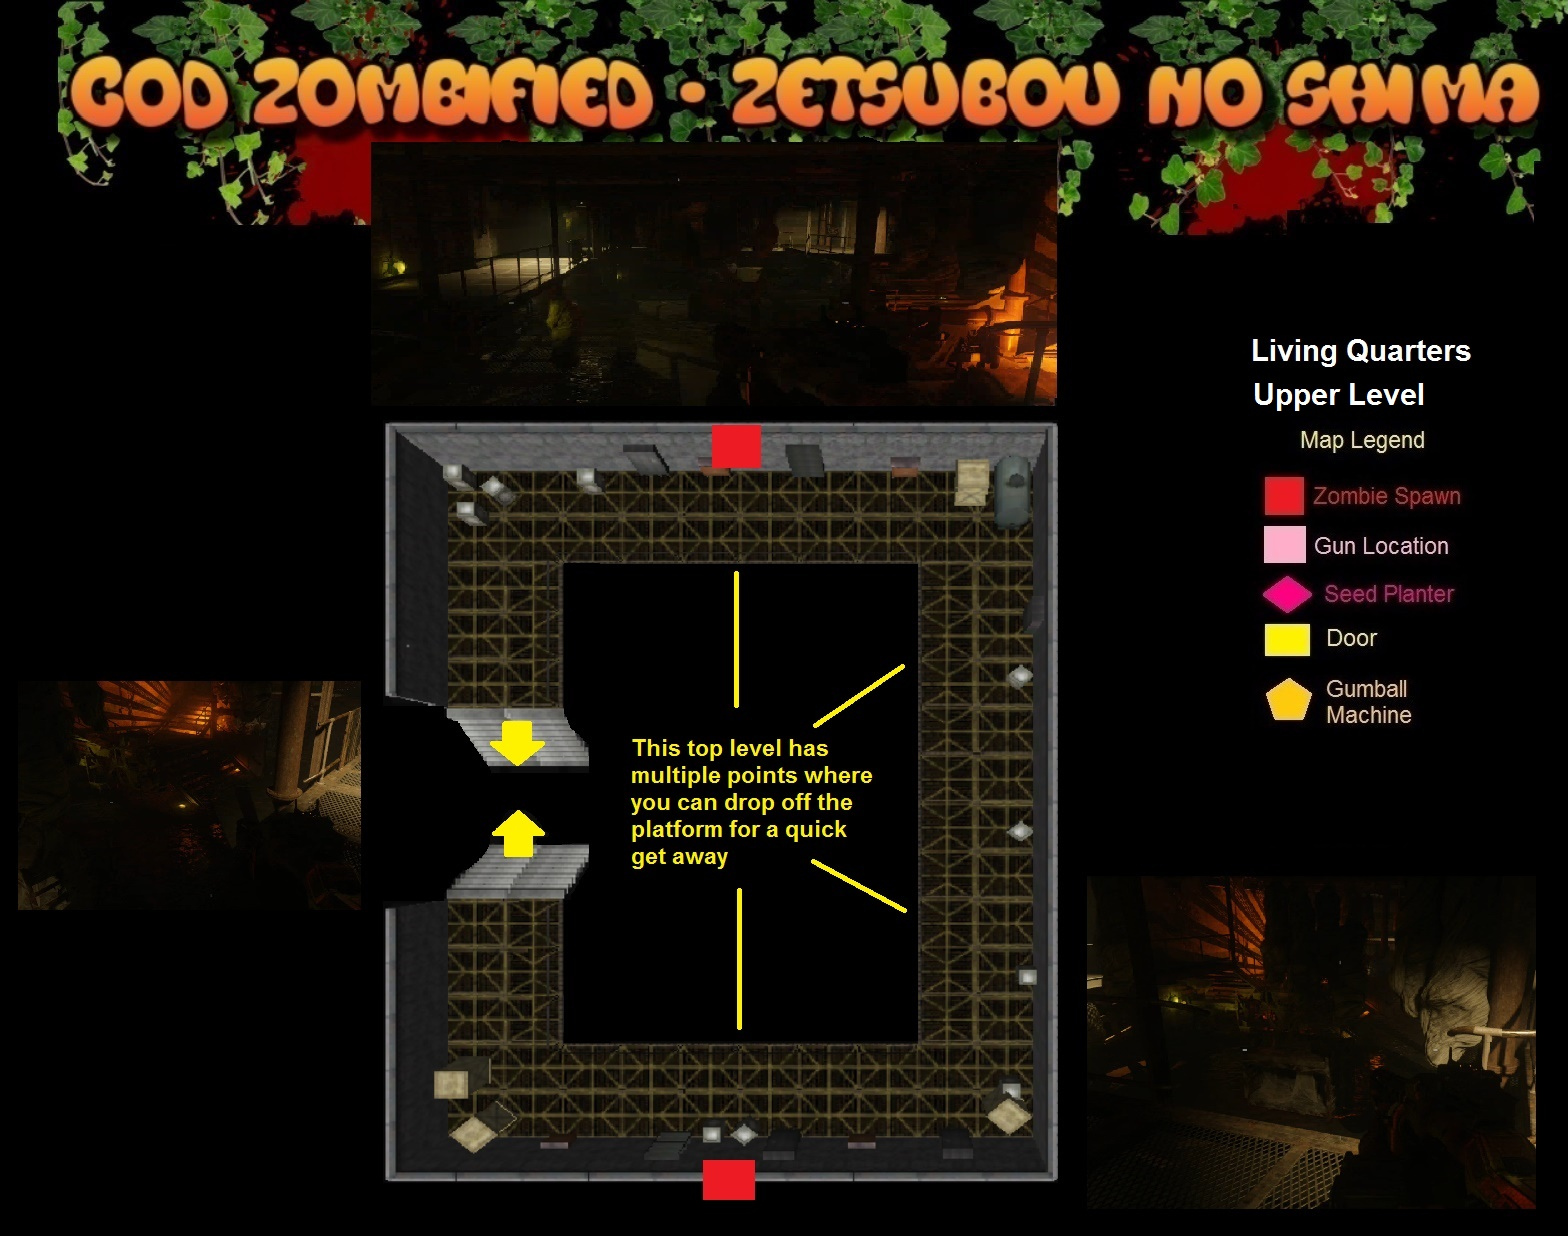 Zombified call of duty zombie map layouts secrets for Floor 5 map swordburst 2